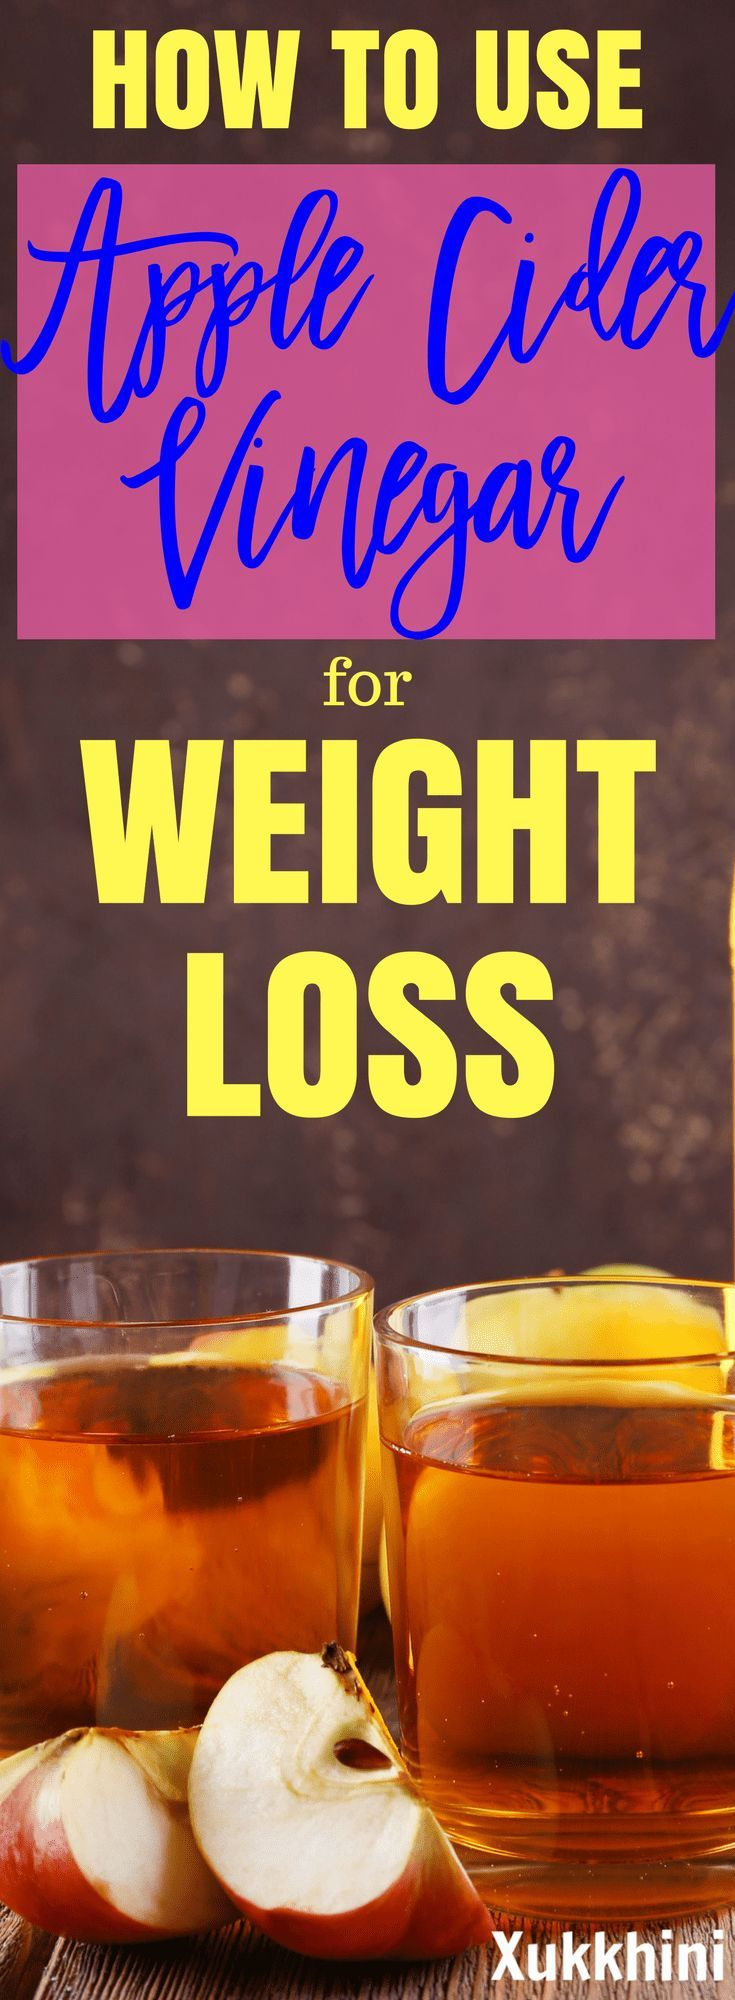 If there was ever a miracle fat loss drink, this is it! Learn how to burn fat naturally, easily and quickly by adding apple cider vinegar to your diet as well as tasty and healthy apple cider vinegar drinks. #AppleCiderVinegarForWeightLoss #HowToUseAppleCiderVinegarForWeightLoss #HowToLoseWeightWithAppleCiderVinegar | Apple Cider Vinegar to Lose Belly Fat | Apple Cider Vinegar for Fat Burning | Weightloss Tips | Lose Weight Fast | Lose Weight Fast in 1 Week | Weight Loss Motivation